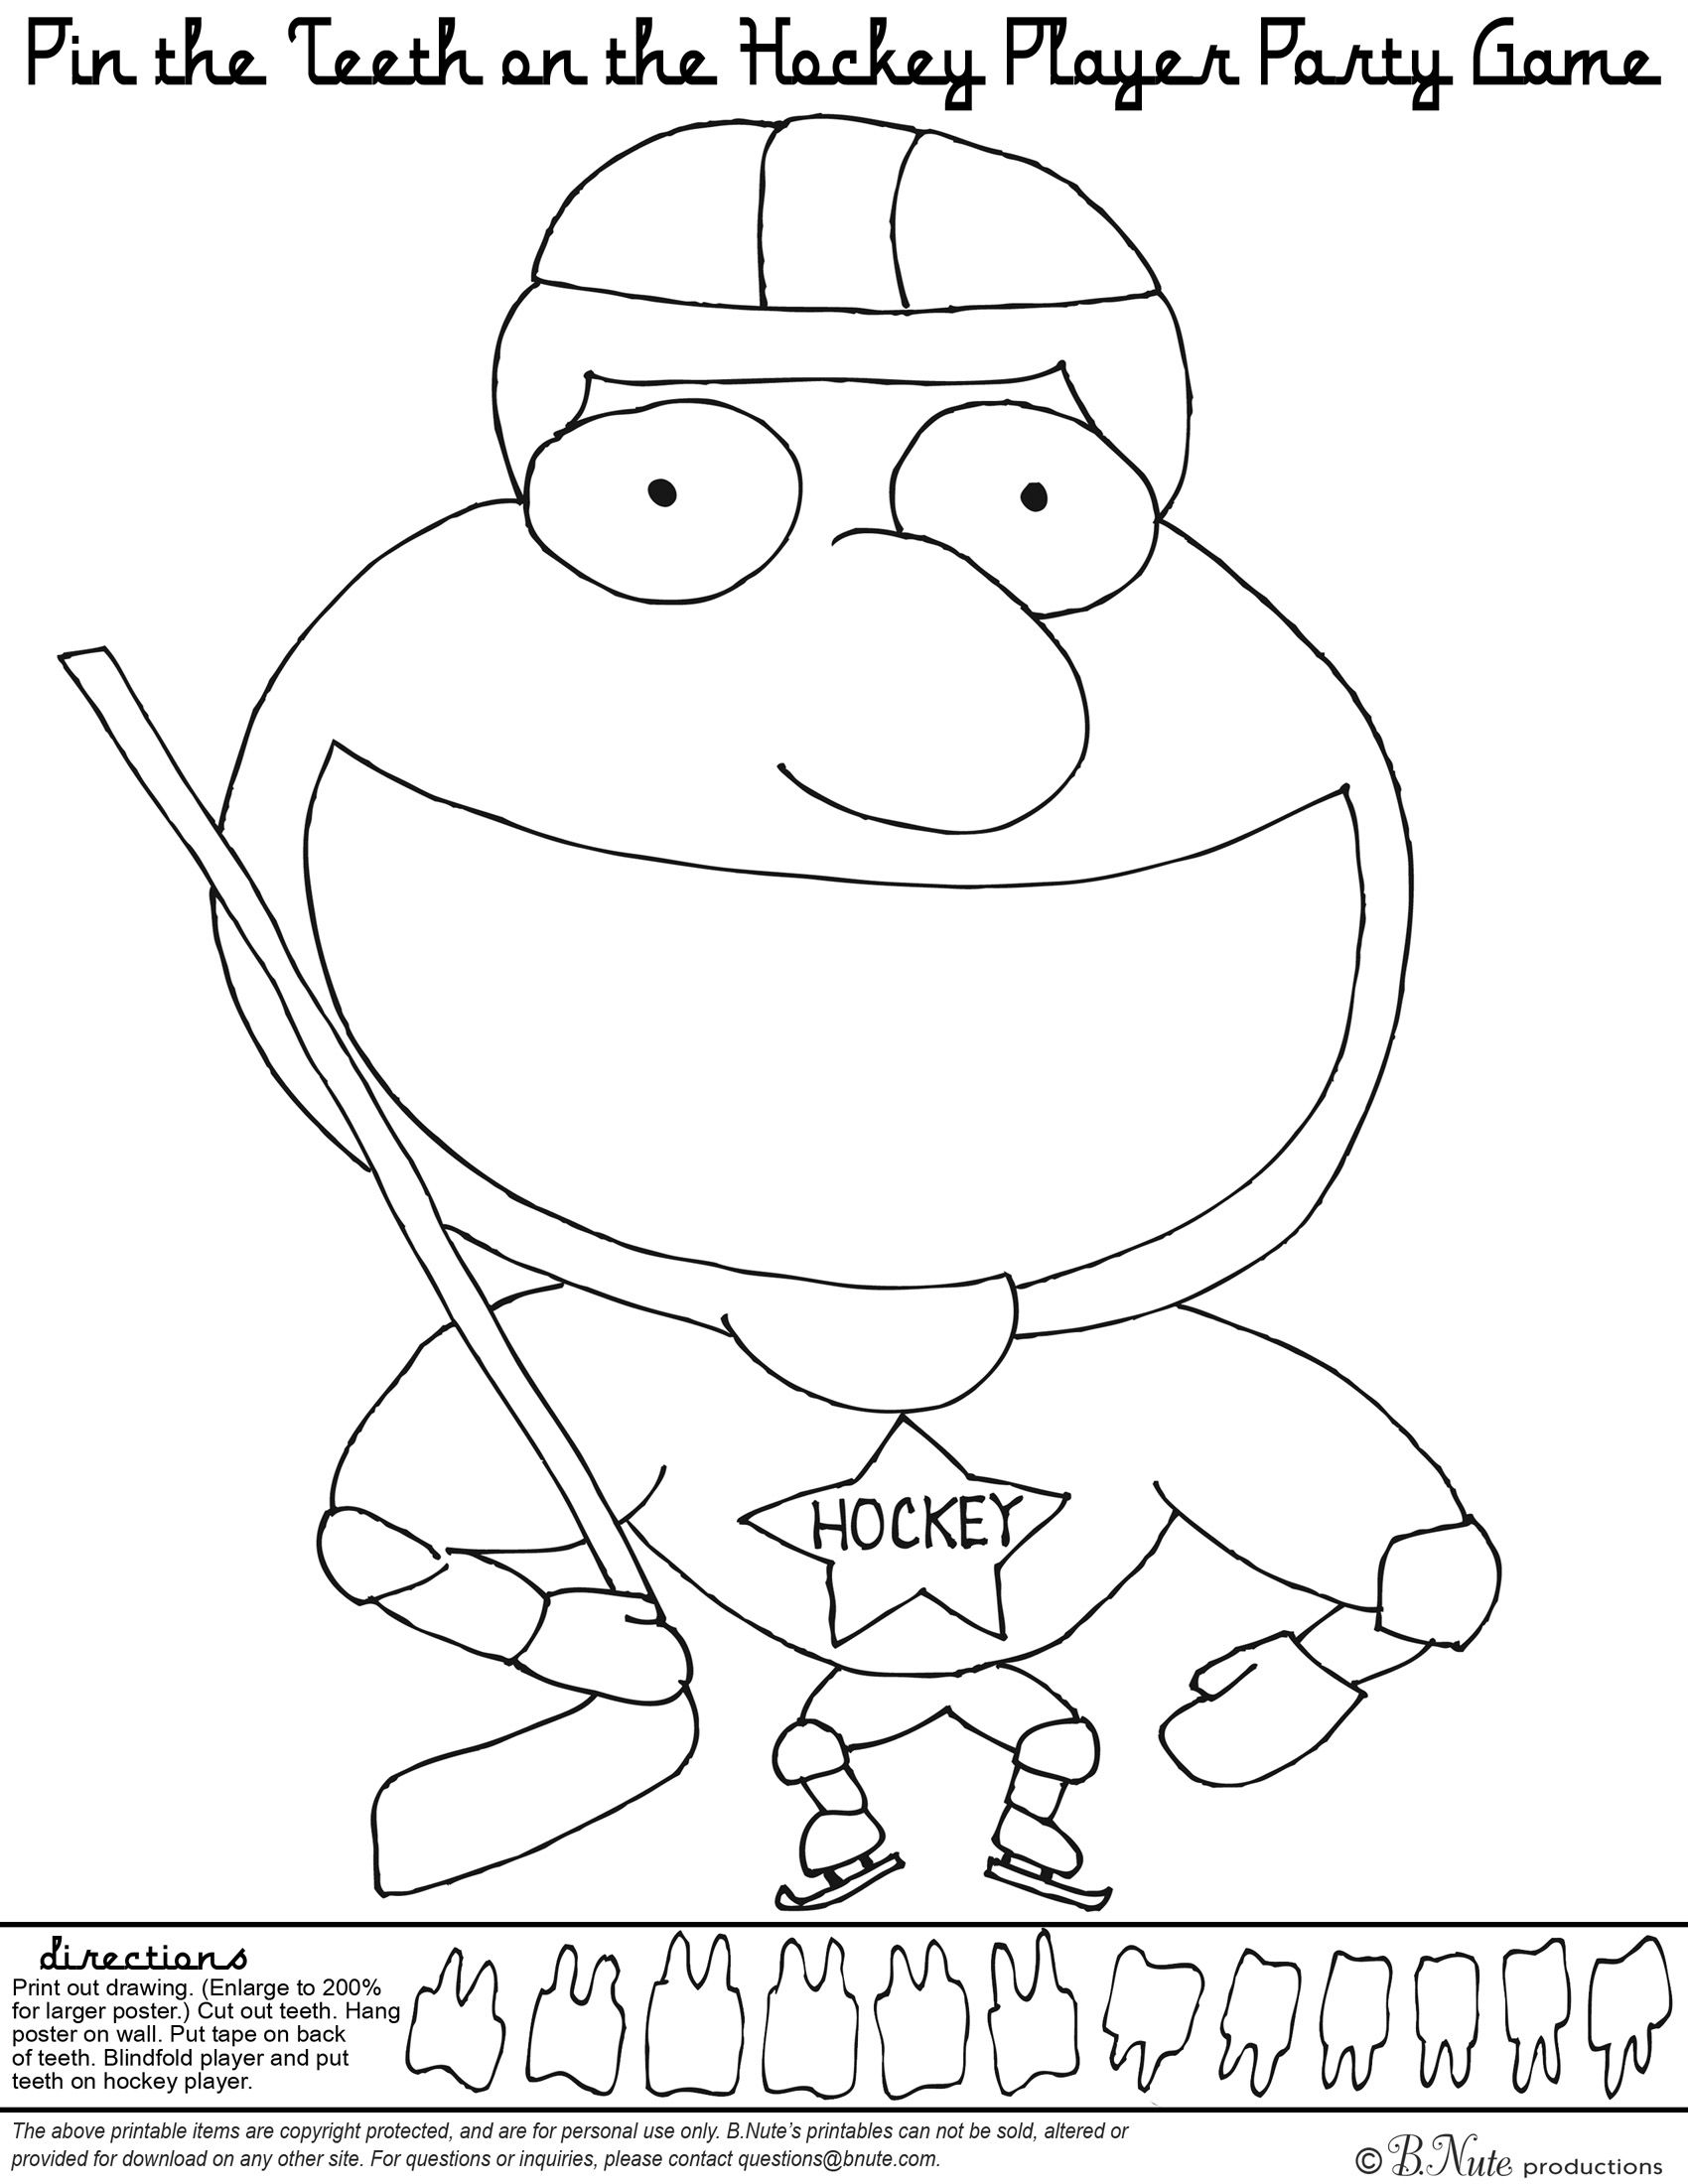 Free Printable Hockey Party Game And Coloring Page Hockey